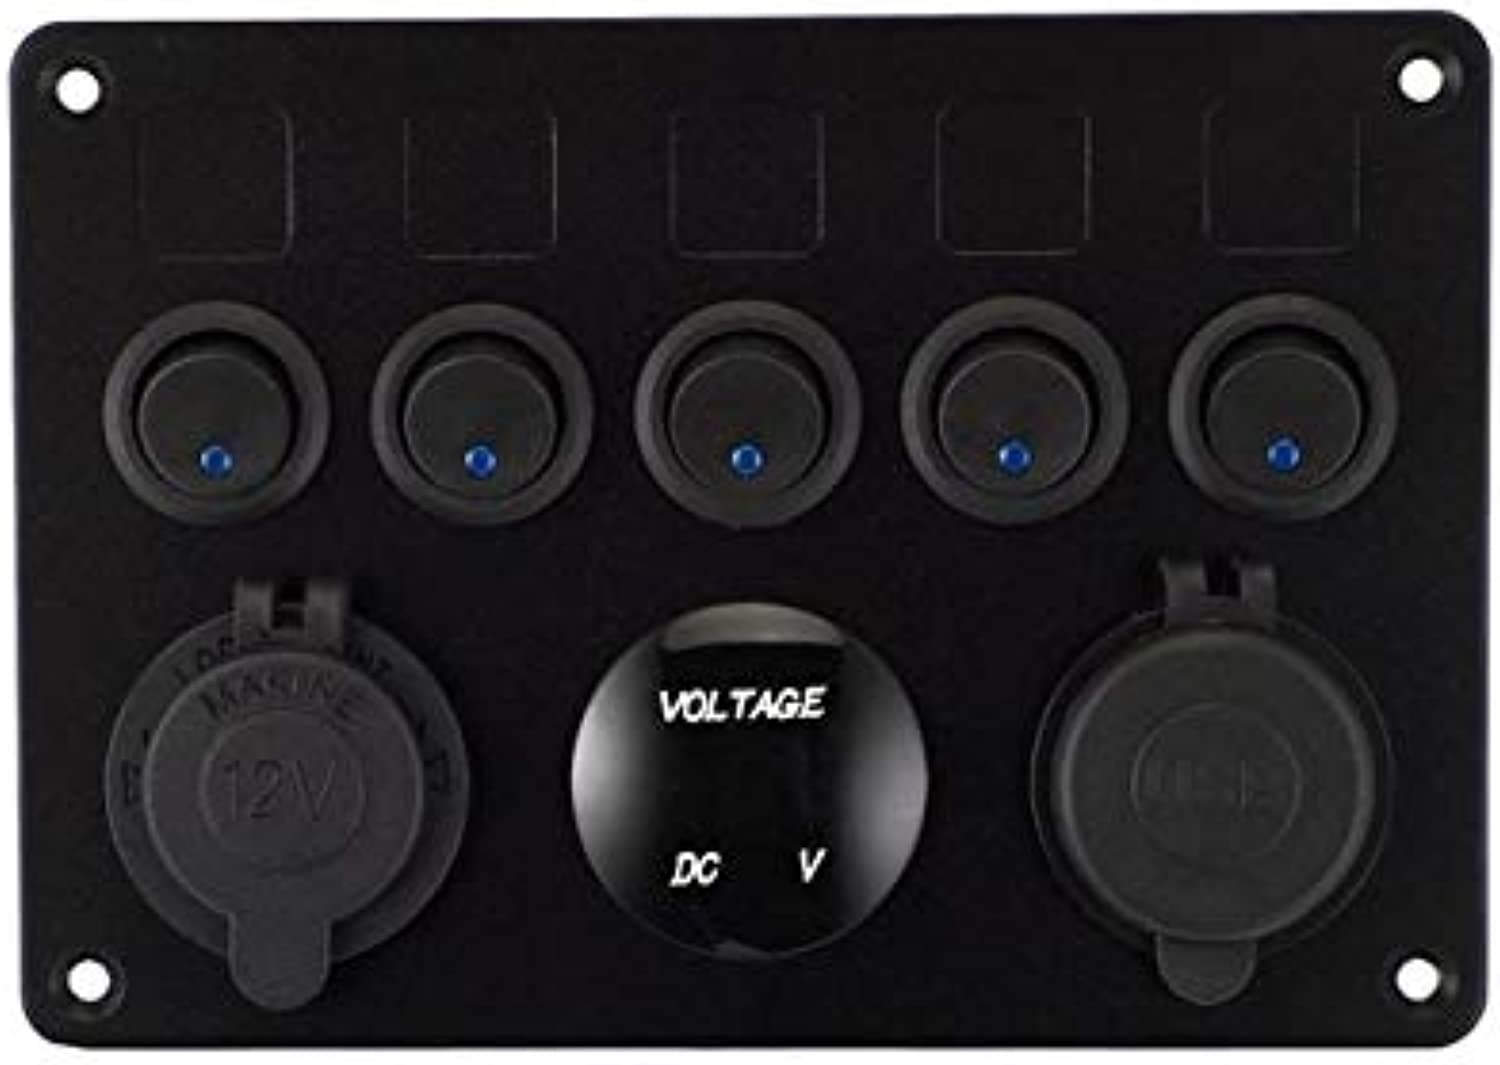 Cocas 5 Gang ONOff Toggle Switch Control Panel with Digital Voltmeter 2 USB Charger 12V for Car Marine Boat